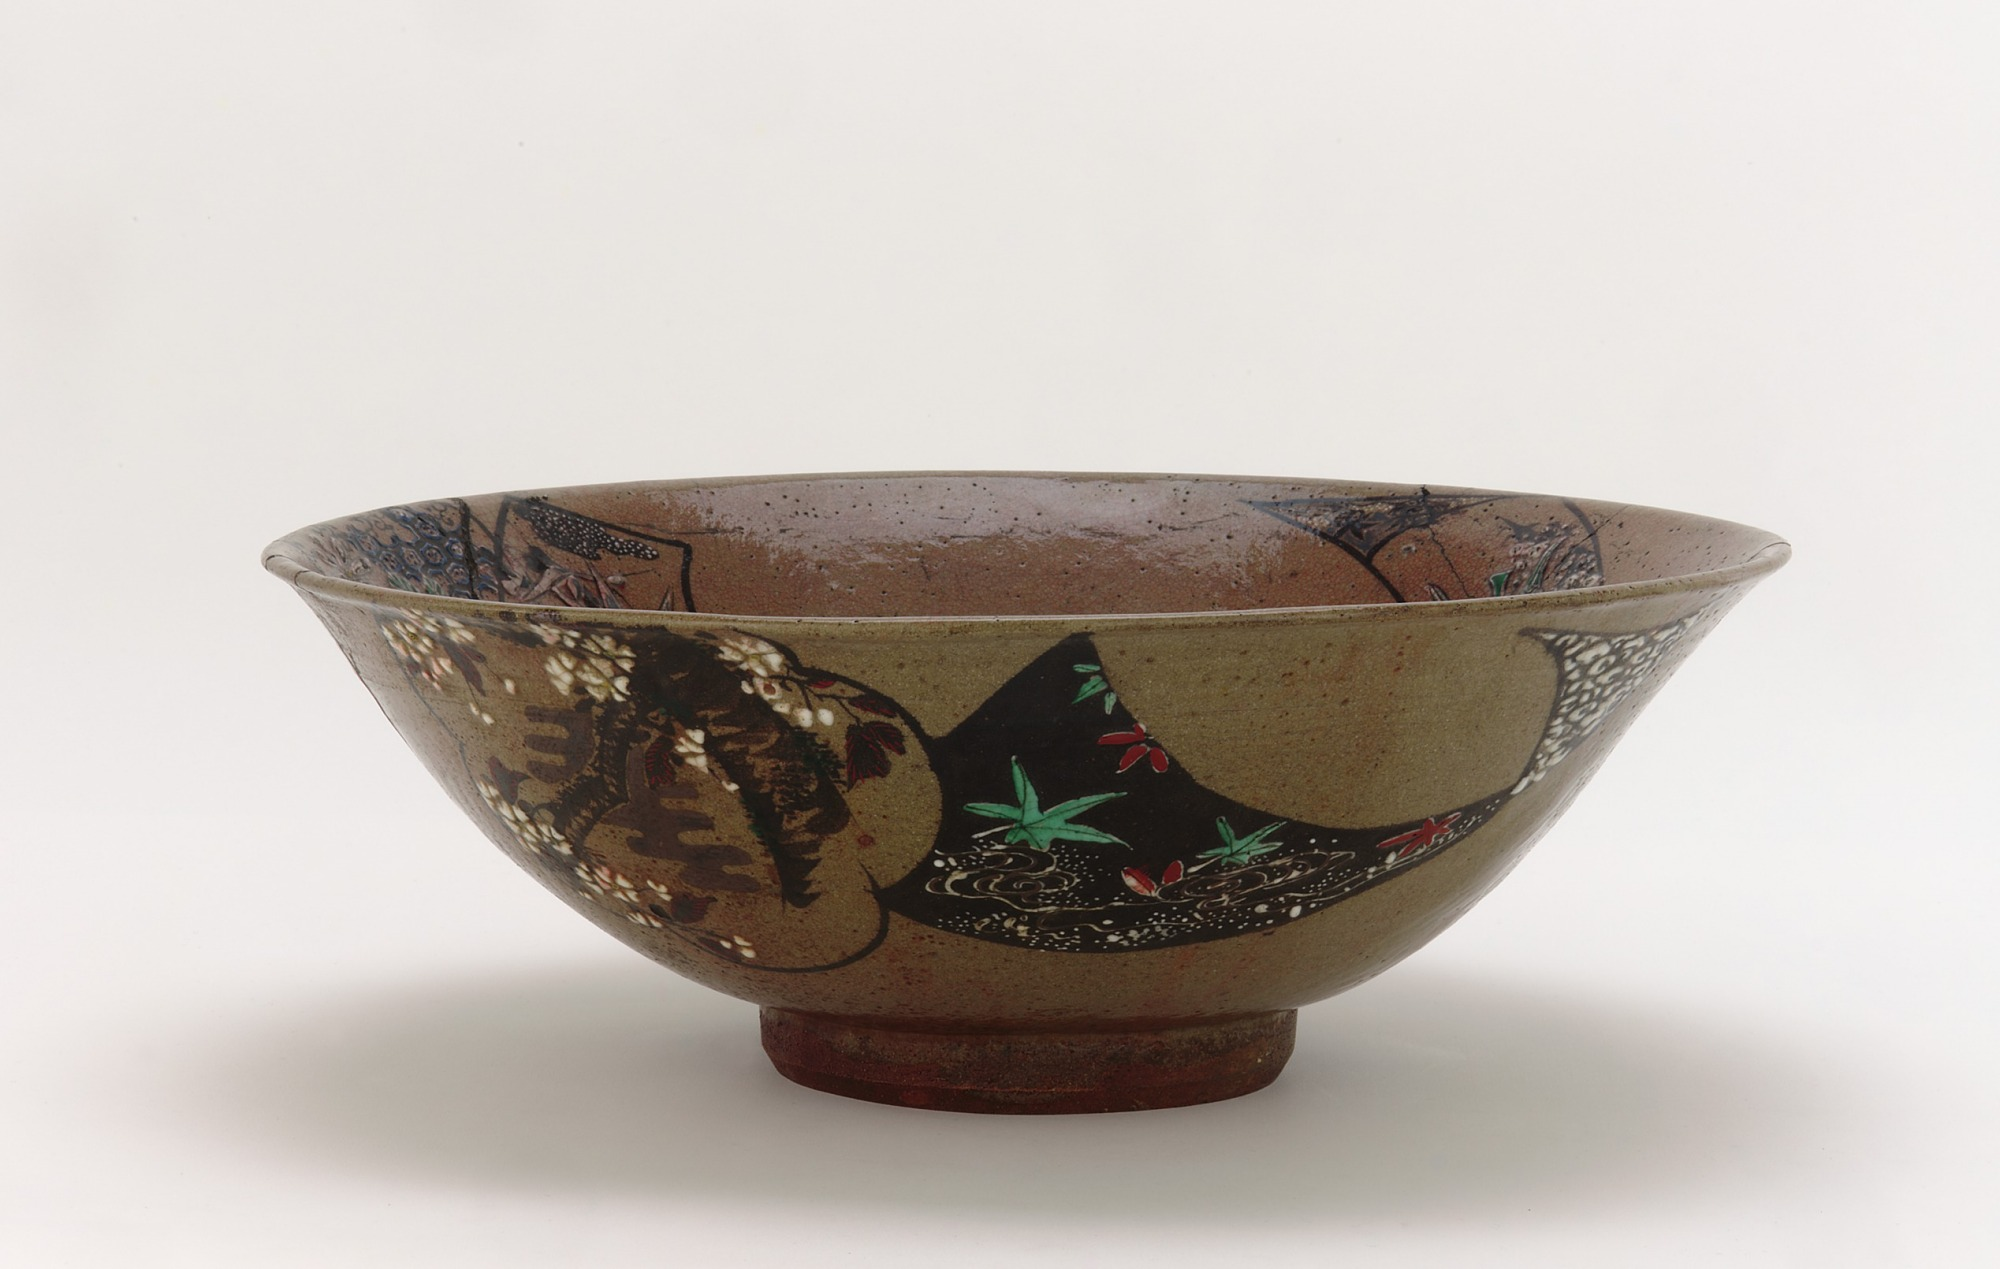 profile: Bowl with design of auspicious motifs